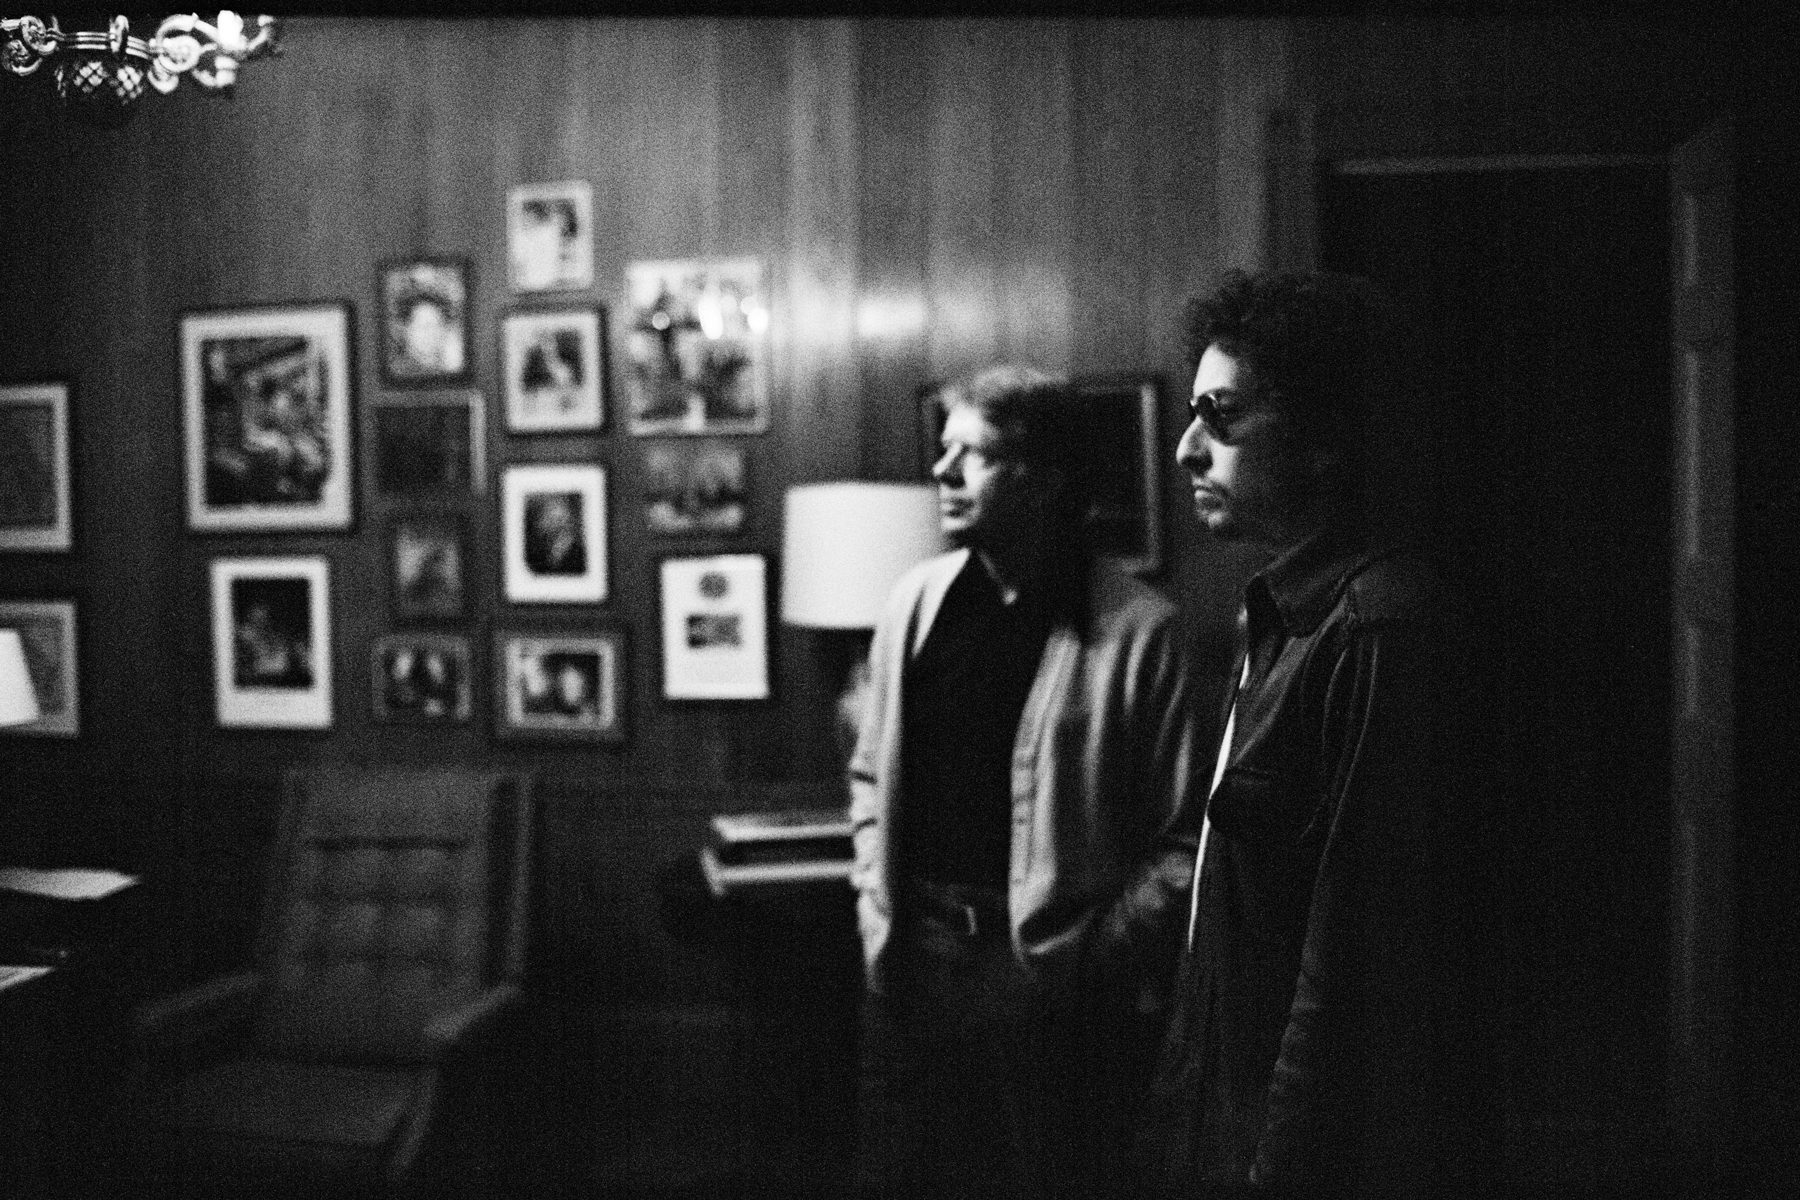 Jimmy Carter and Bob Dylan